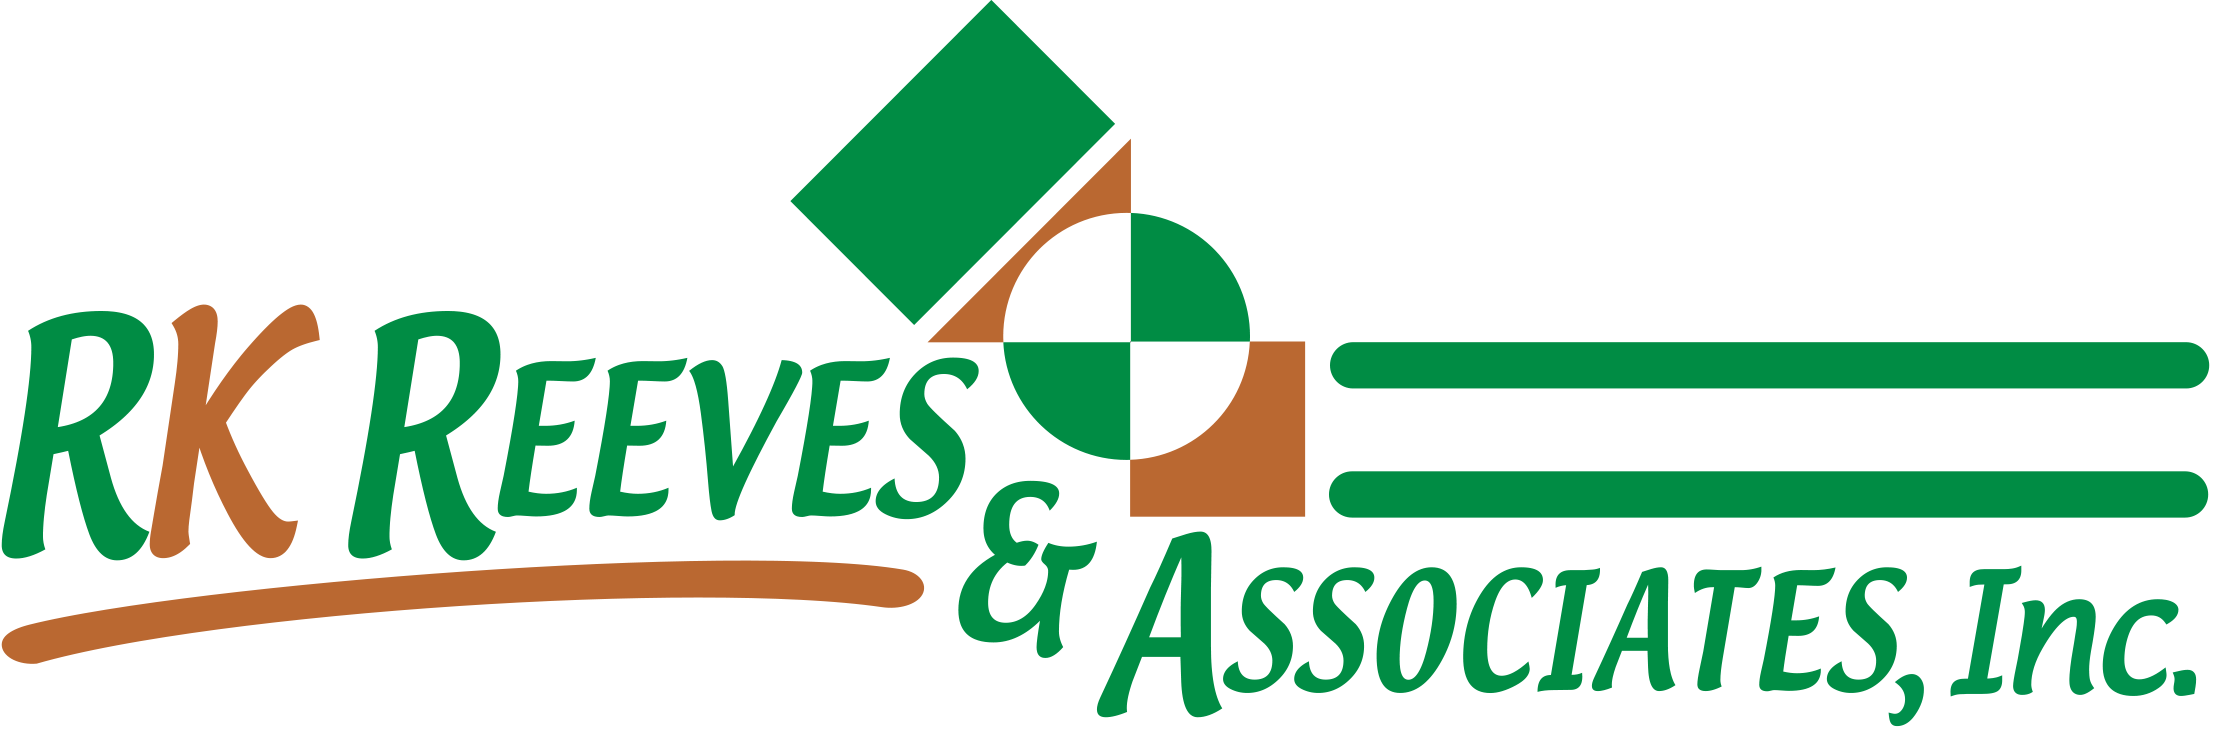 RK Reeves & Associates Logo